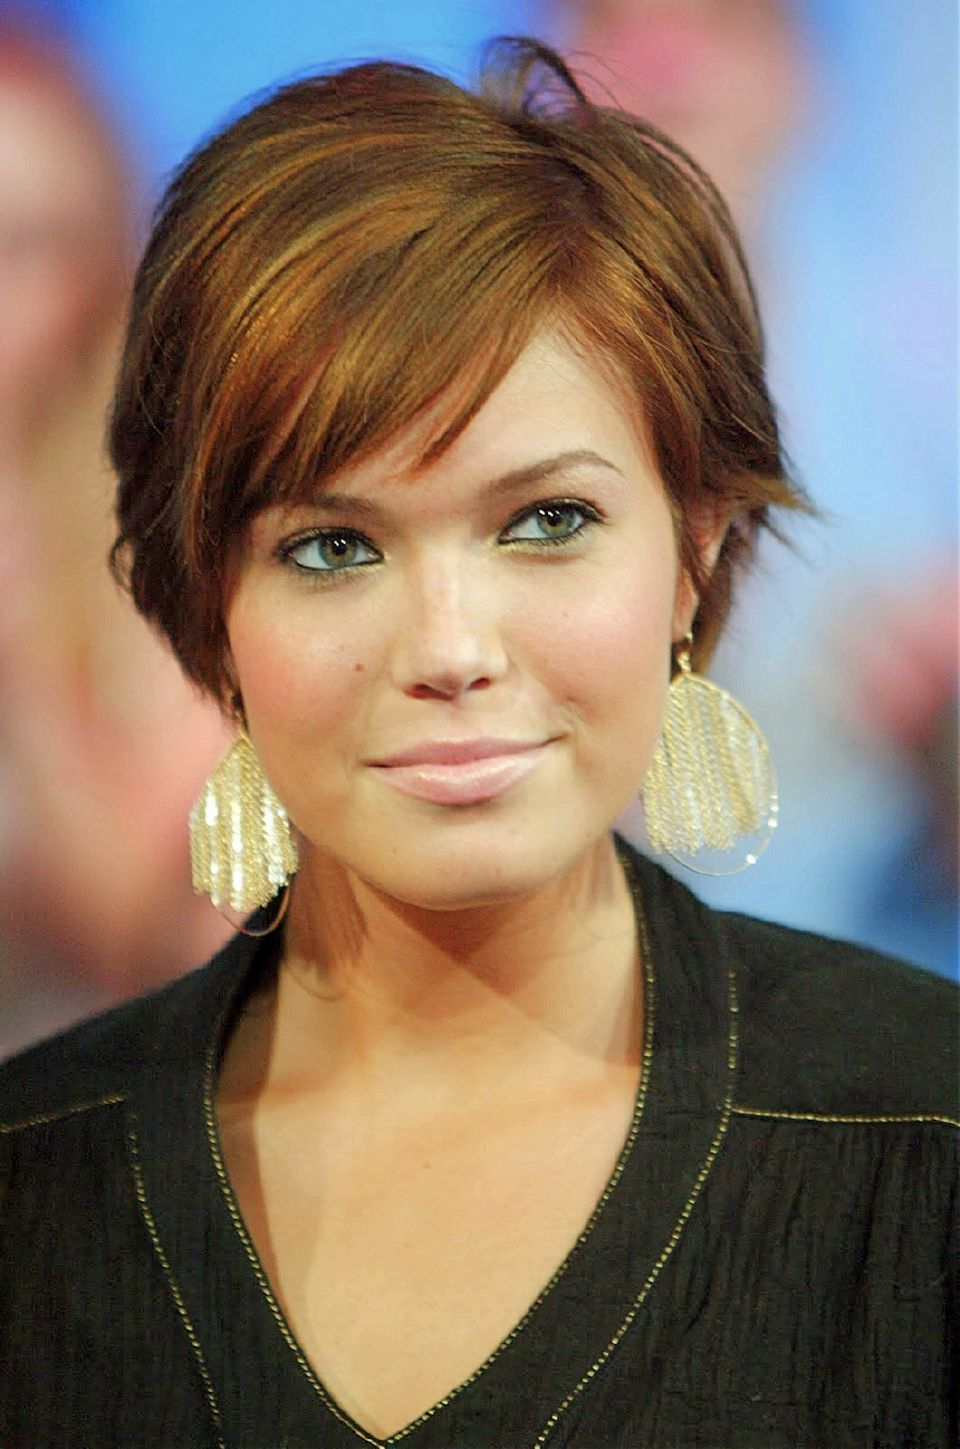 20 Short Hairstyle Ideas For Round Faces: Chic Haircuts You Have To With Super Short Hairstyles For Round Faces (View 2 of 25)